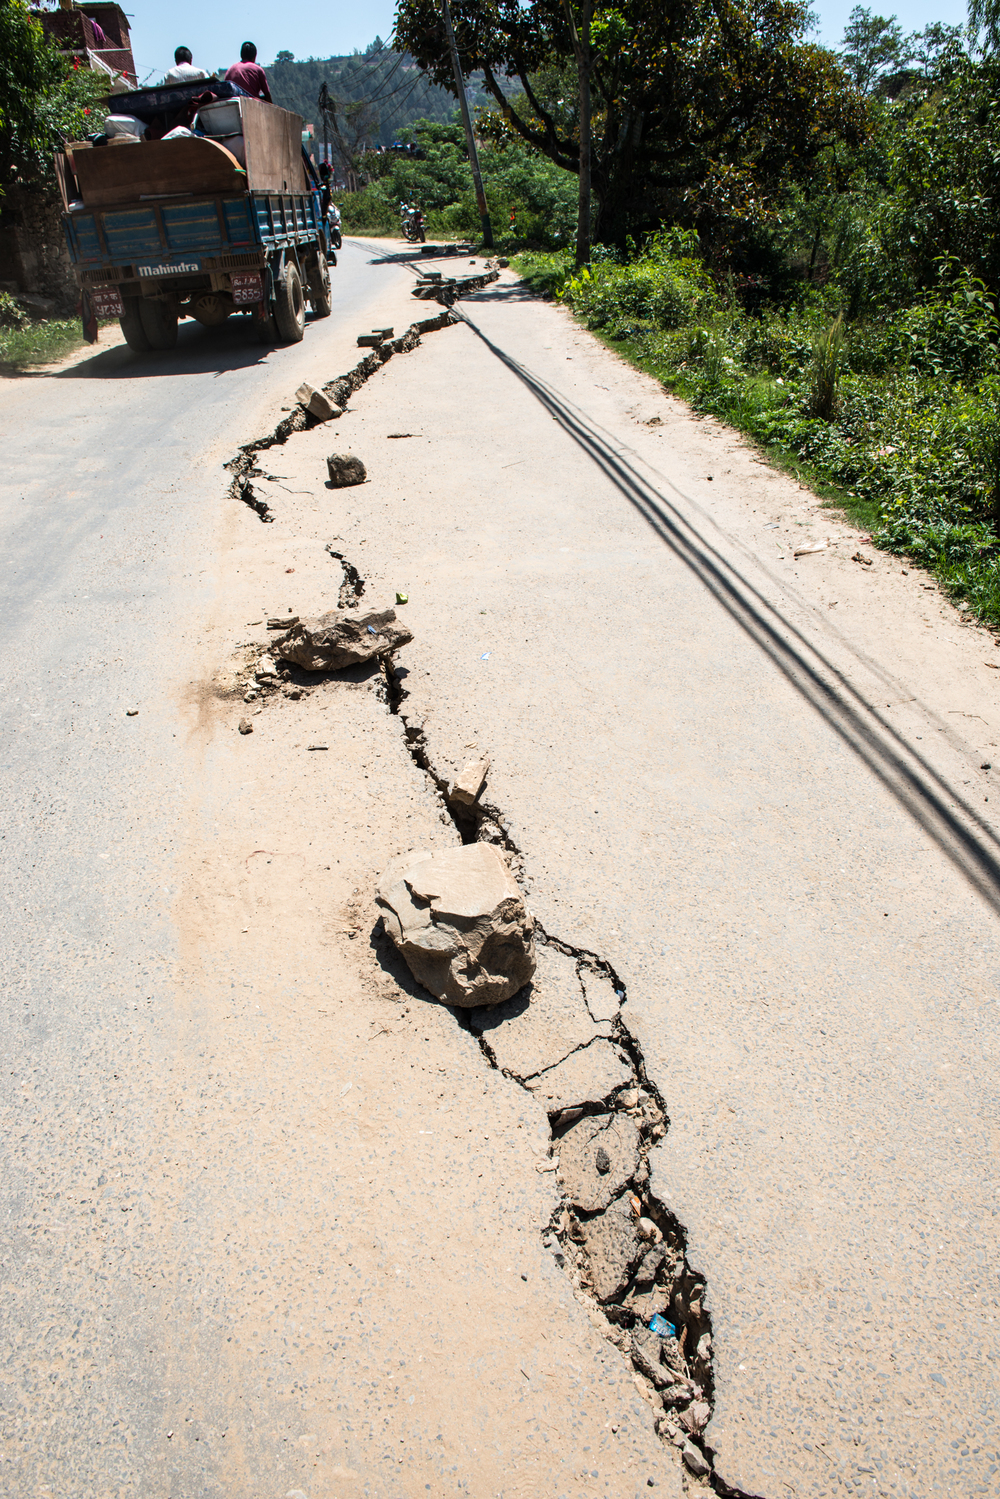 The road torn open.